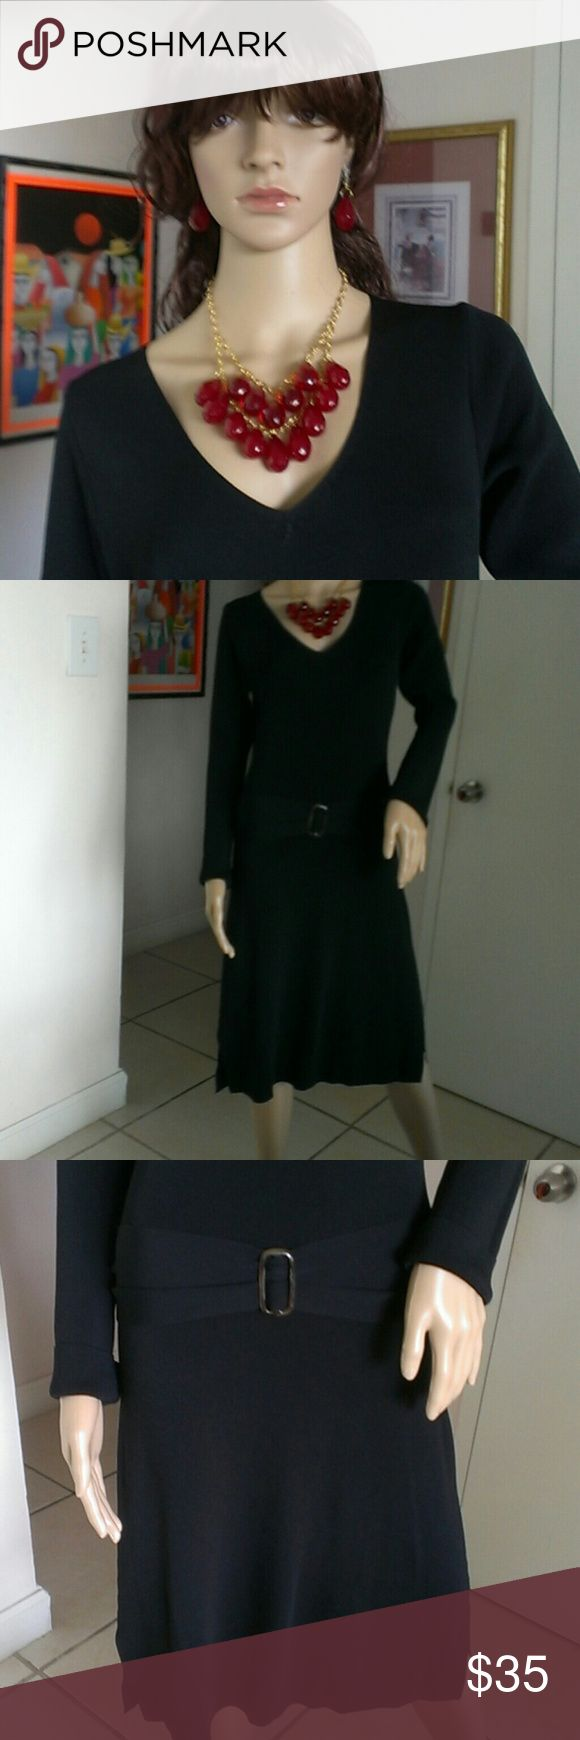 """""""REDUCED """" NWT Max Studio Black Dress Last Chance - Now. Casual  Black Dress,  V-neck Long Sleeve. The says small, but band tends to run size Medium-Large,  knee-Length, Comfortable Stretch, Bodycon. Can be combined with high heels, boots or with different accessories. Very nice. Great deal !!!  All purchase are final. !!! Happy Shopping Girls !!! Max Studio Dresses"""